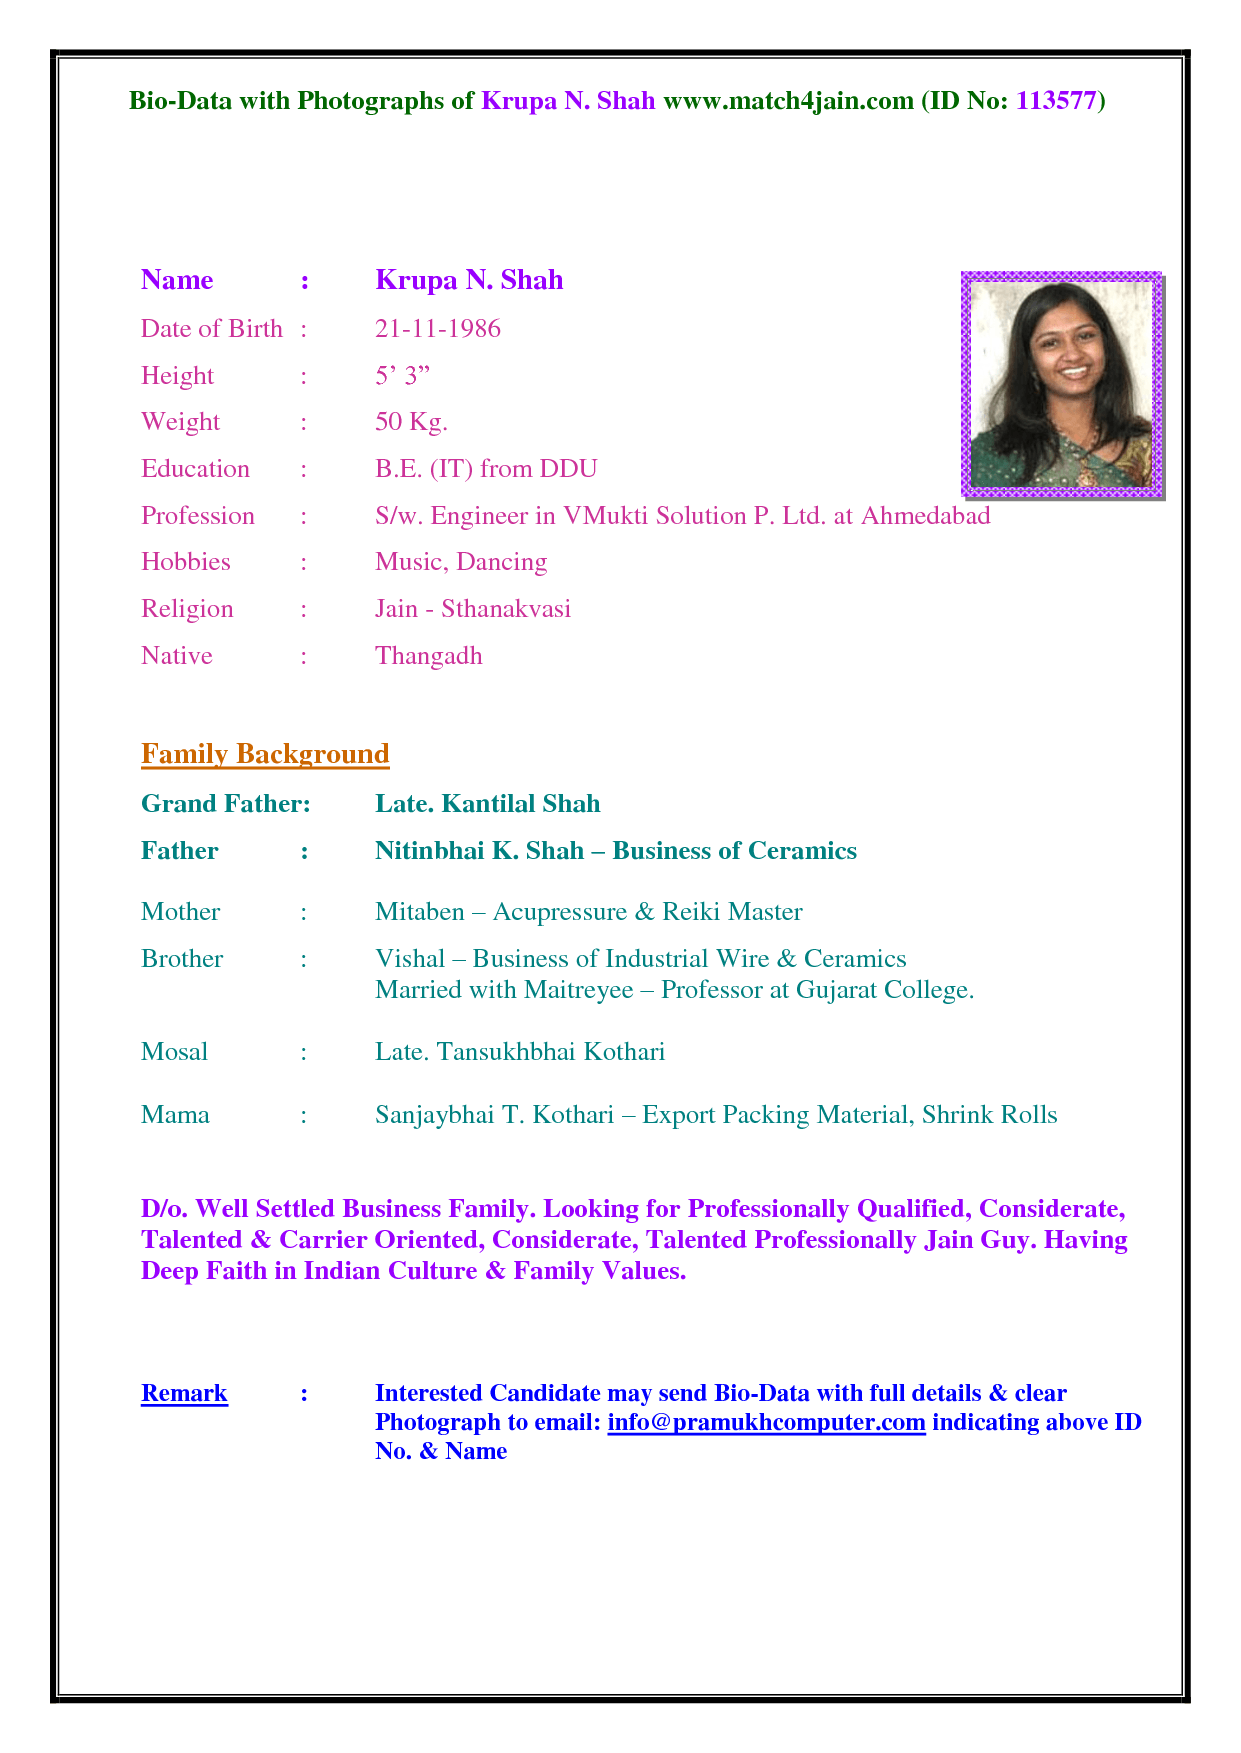 sample marriage biodata format in word easybiodata 1 trusted site for biodata creation marriage biodata doc word formate resume biodata format for marriage - Word Format For Resume